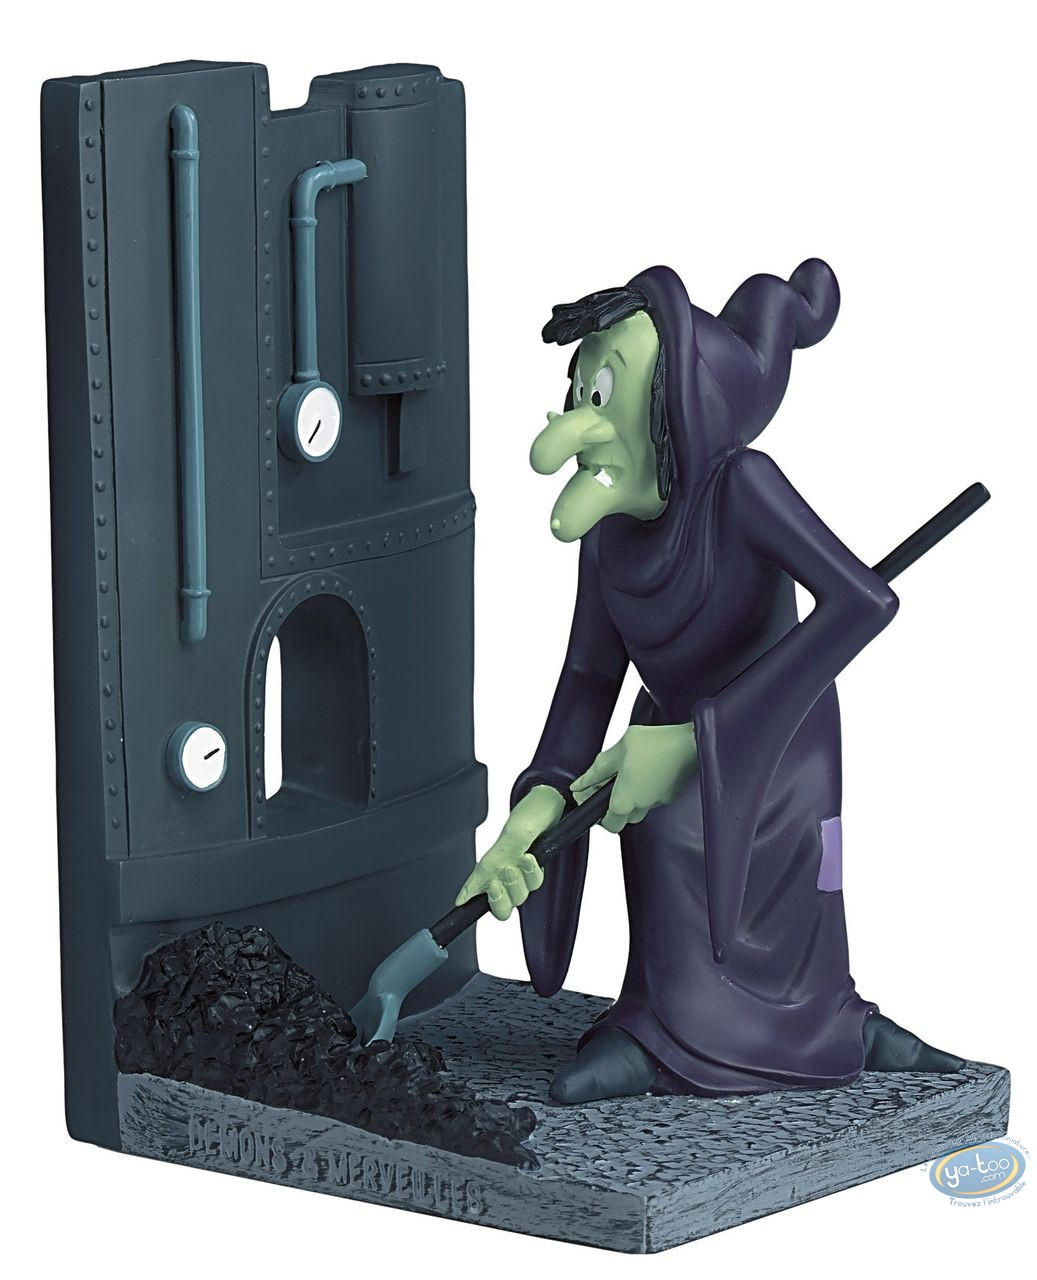 Resin Statuette, Hot Stuff : the witch